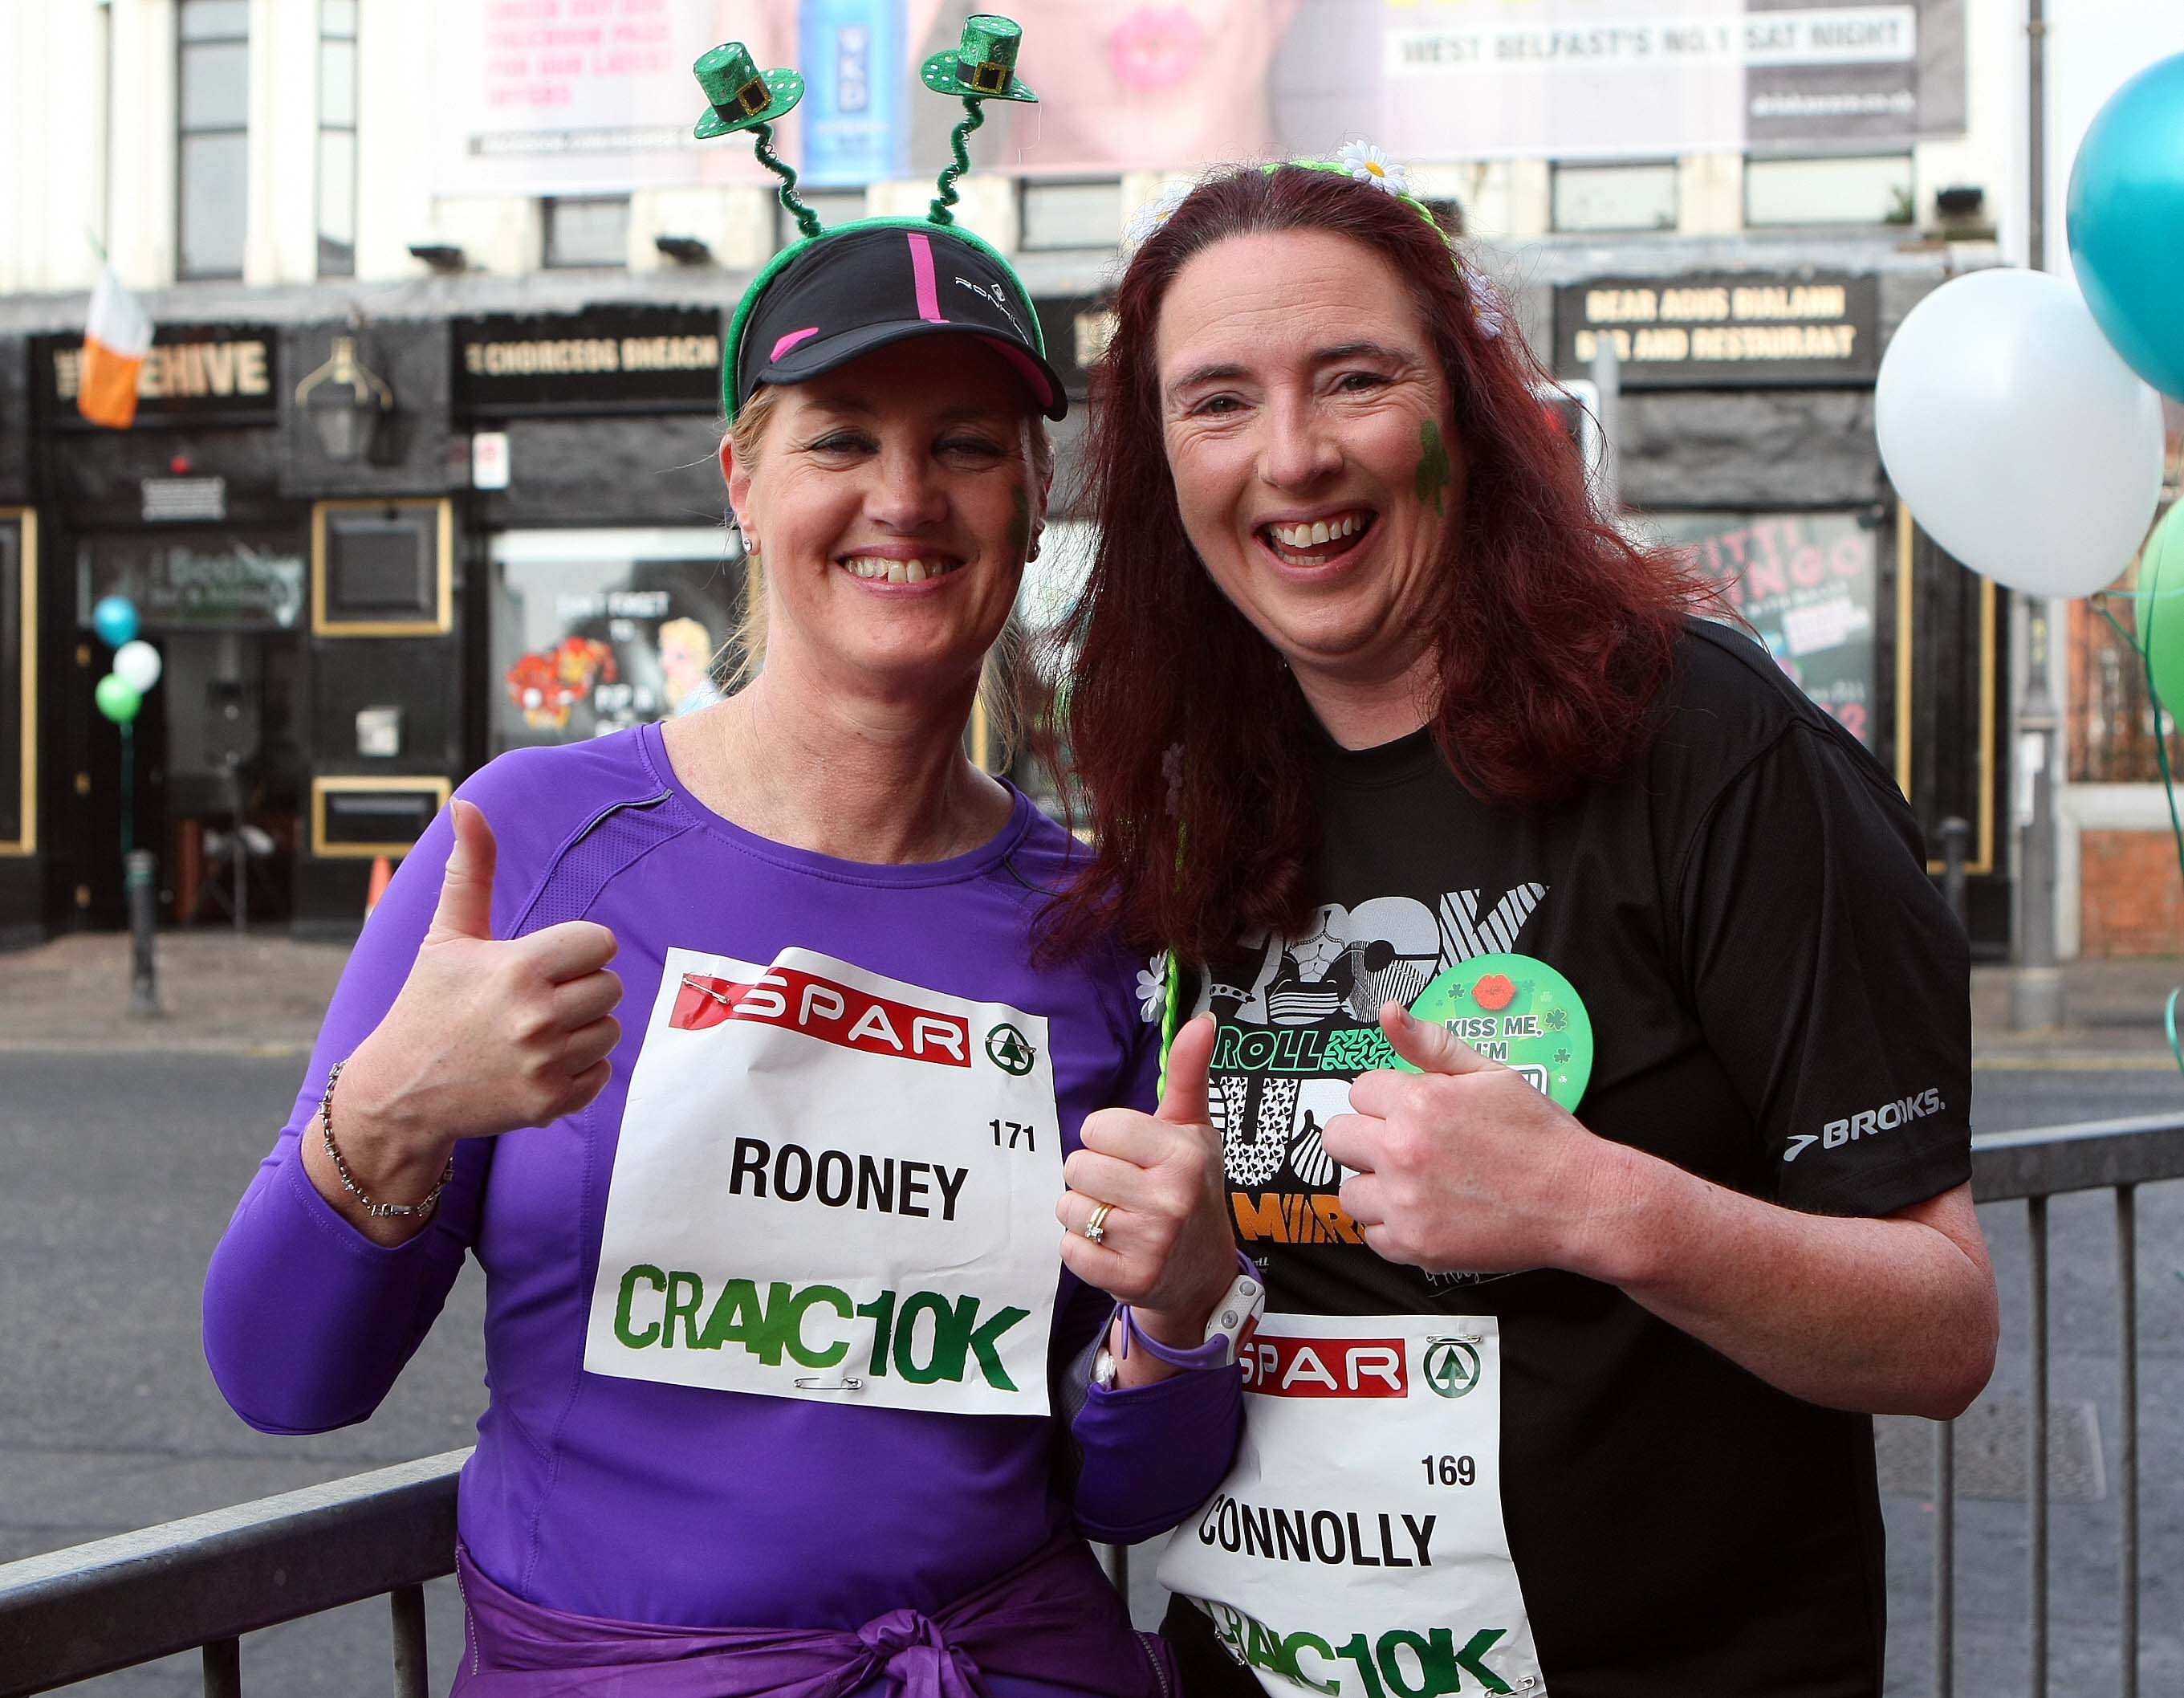 Tuesday 17-3-2015St Patrick's DaySPAR Craic 10k BelfastThumbs up for the runSparCraic10K170315FP028